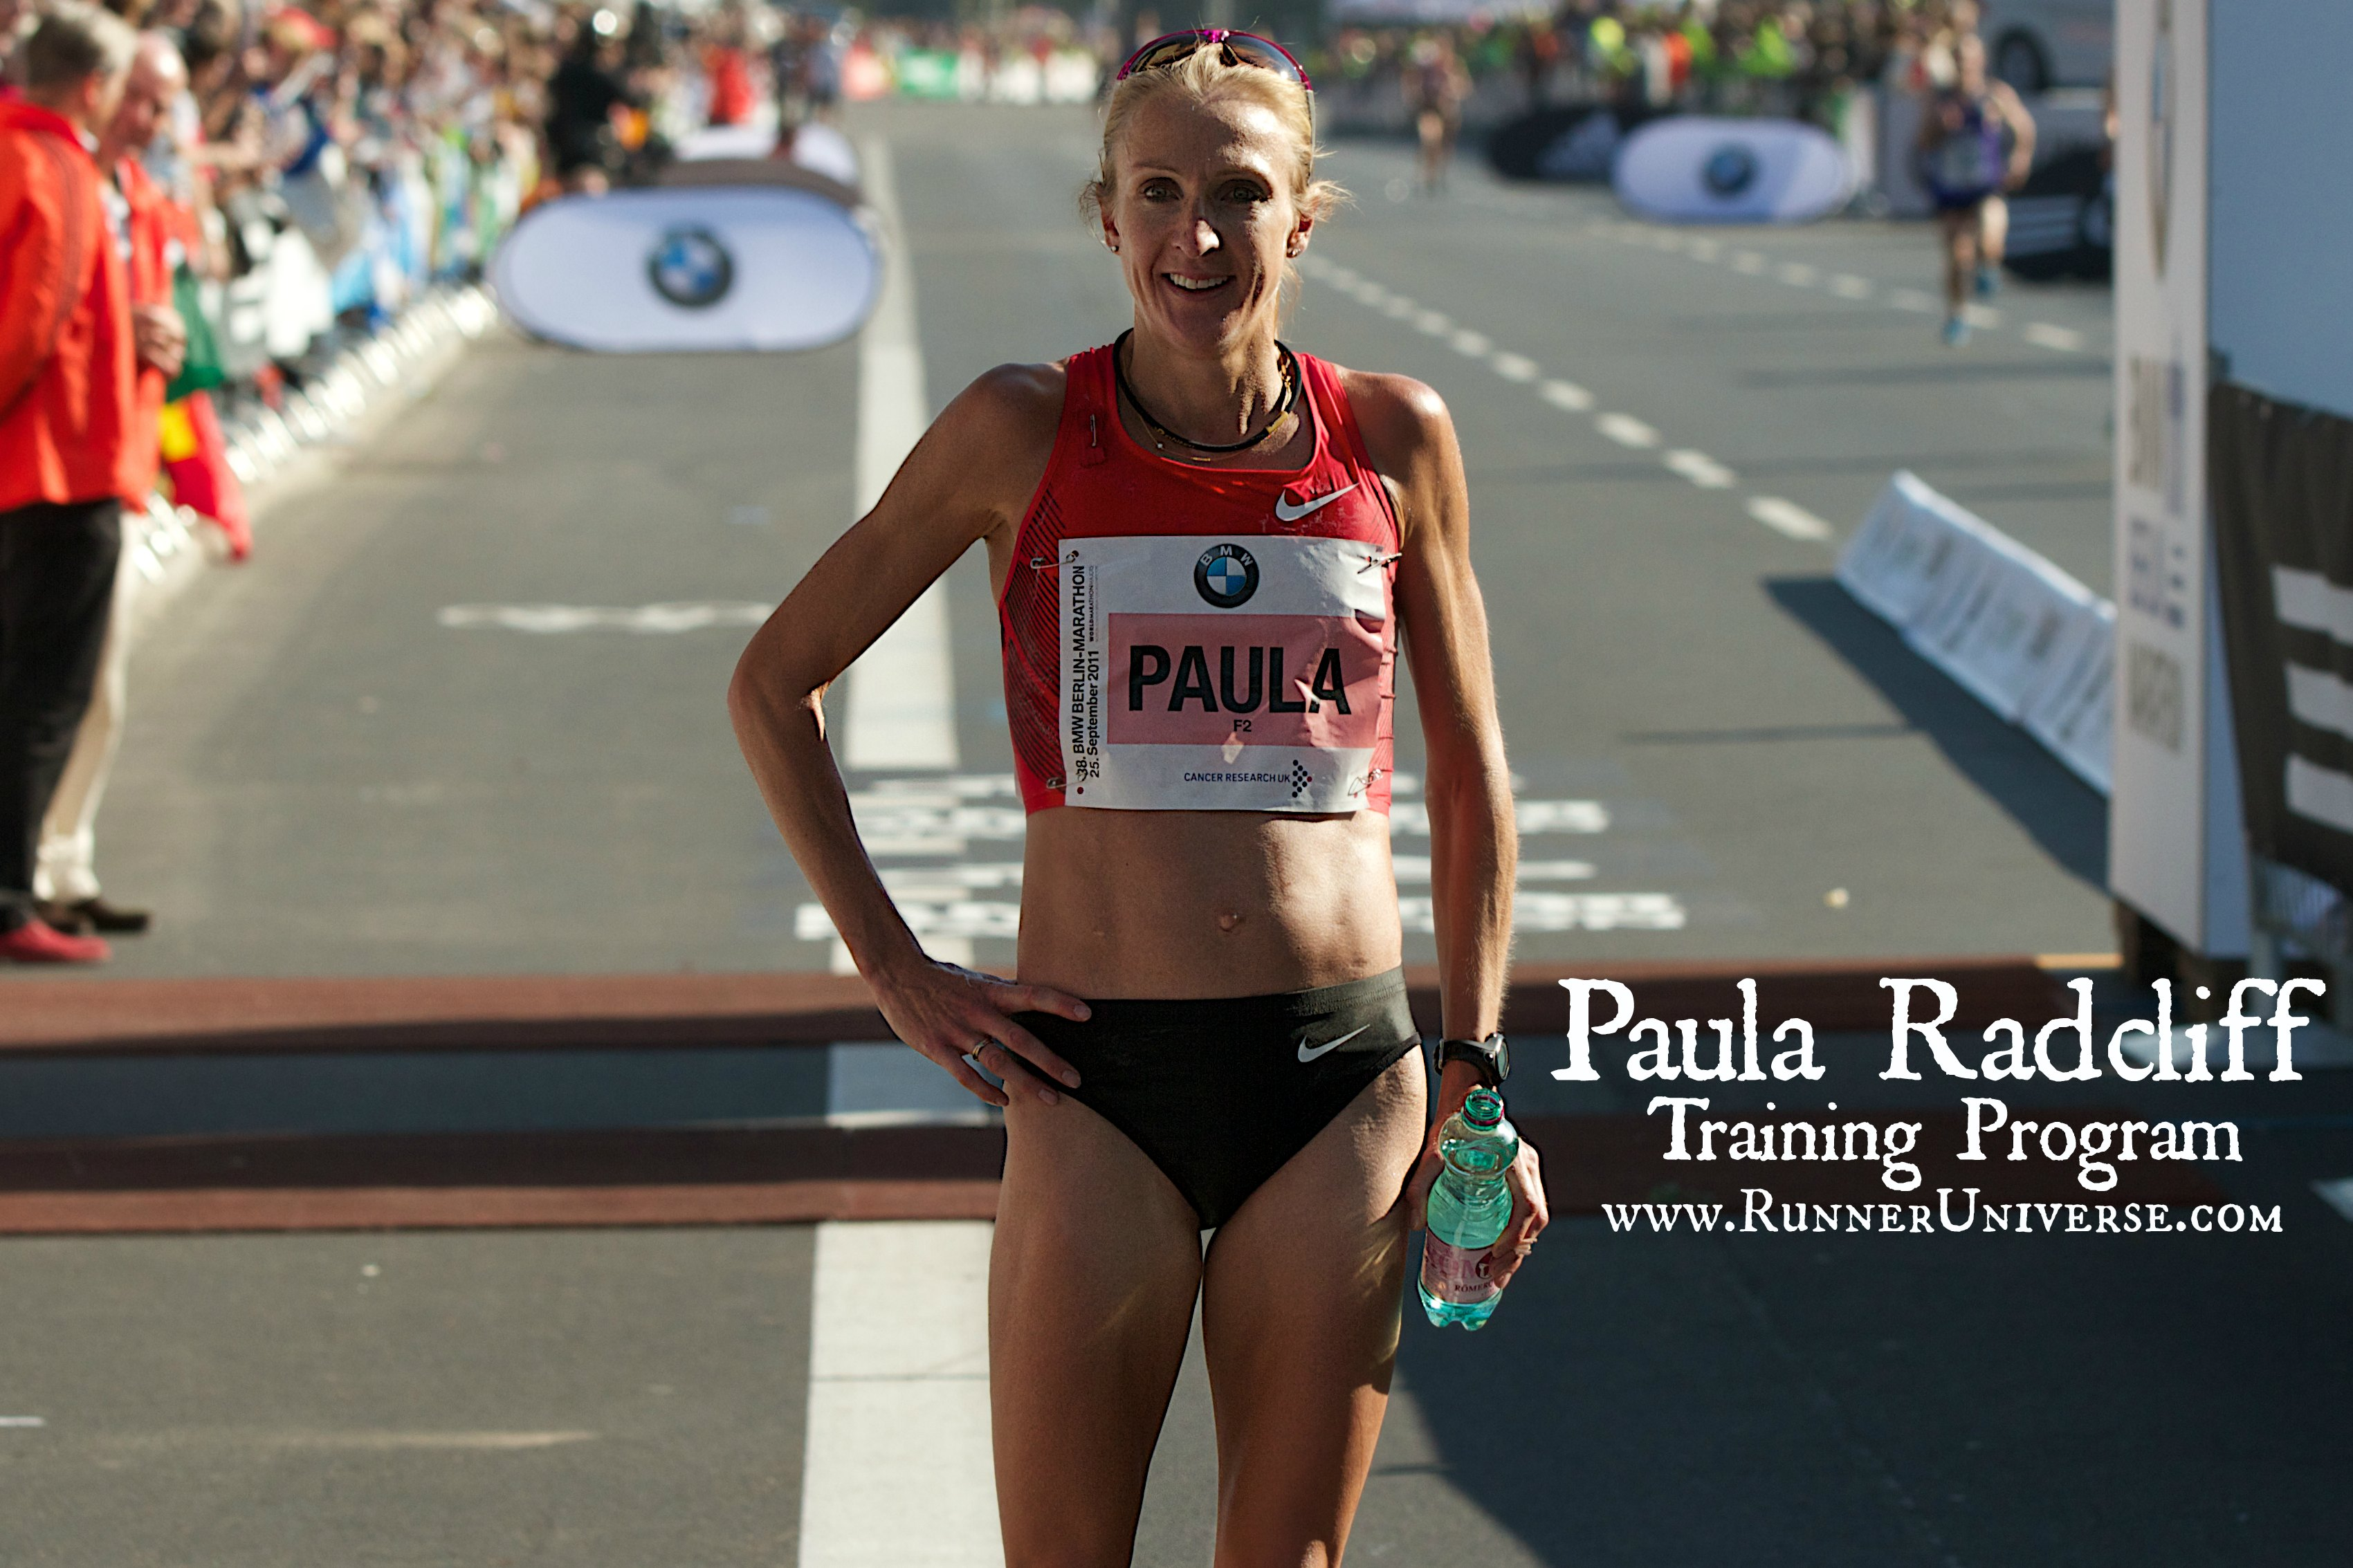 Paula Radcliffe long distance runner